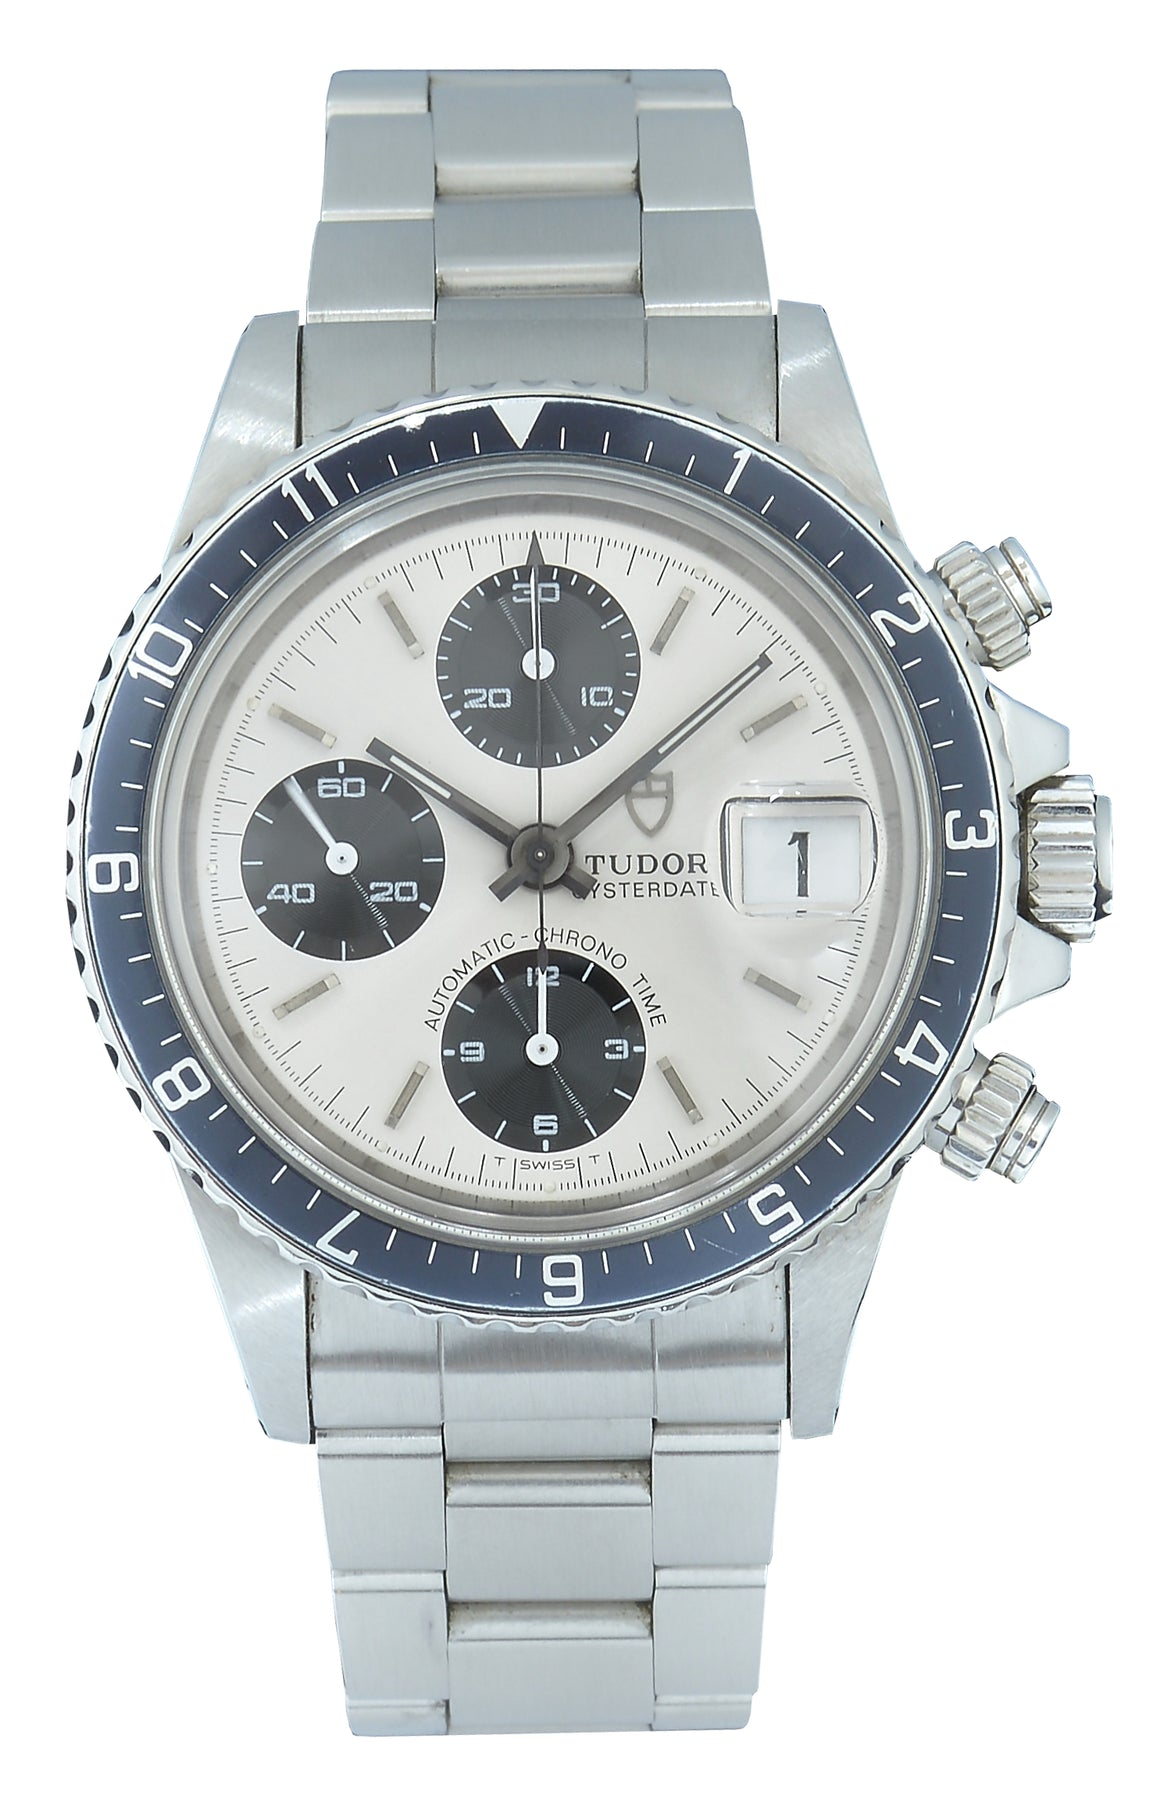 Tudor Oysterdate Big Block Steel with Silver Dial Ref:79170 Papers